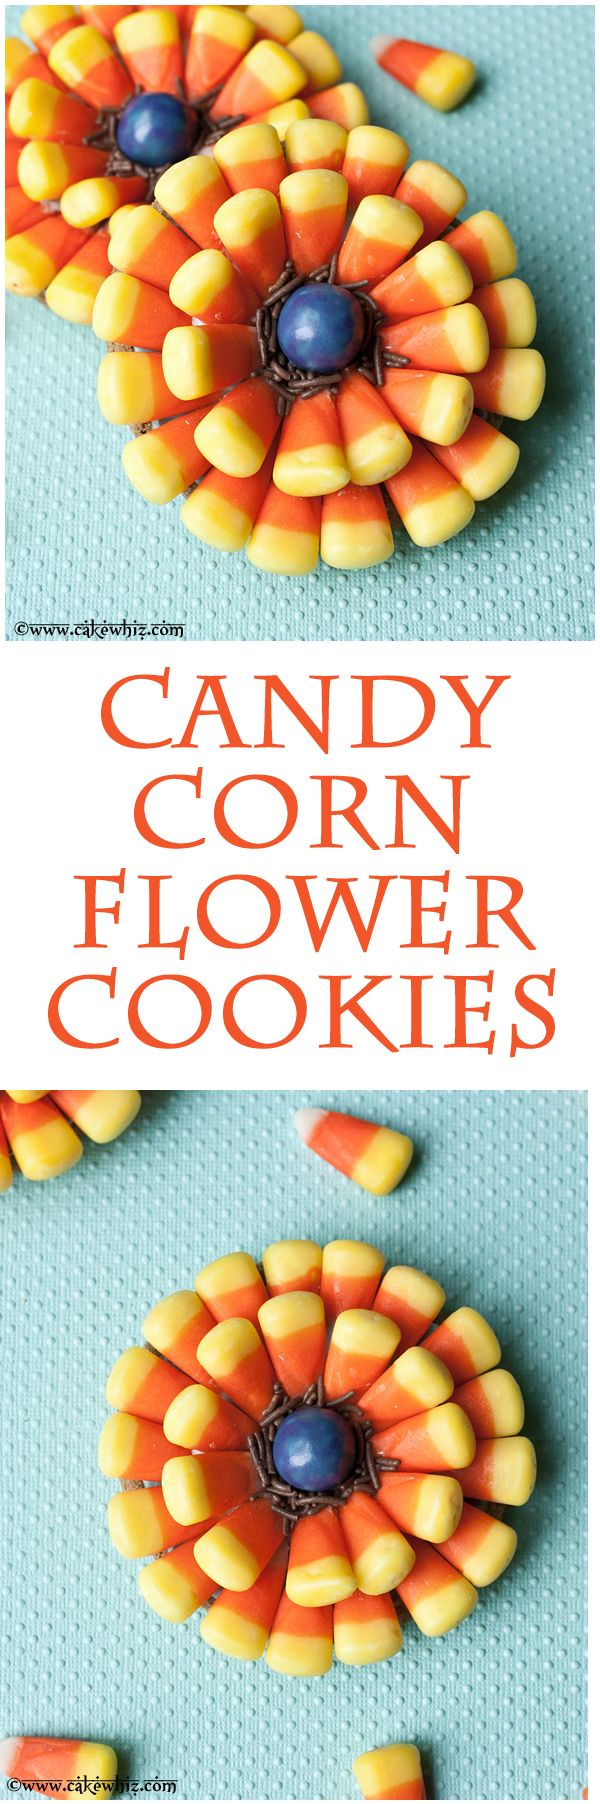 1000+ ideas about Candy Corn Cookies on Pinterest   Candy ...